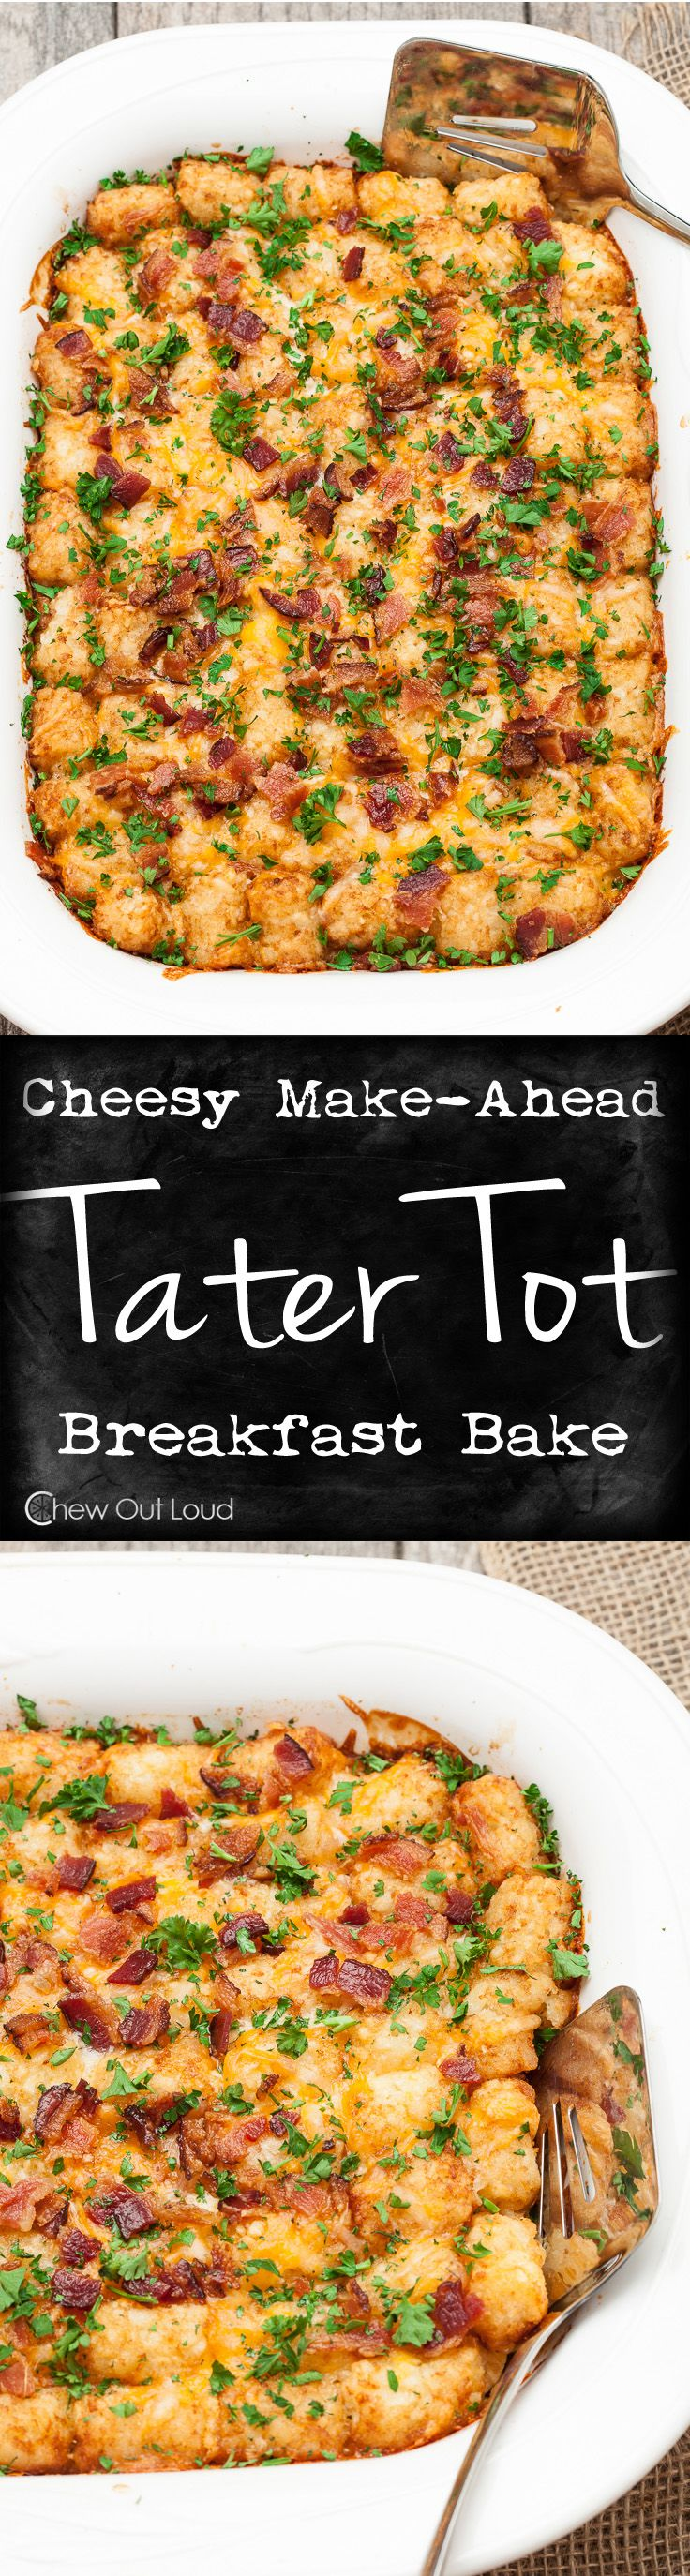 Cheesy Tater Tot Breakfast Bake - Just a handful of ingredients, make-ahead the night before, and delicious the next morning!